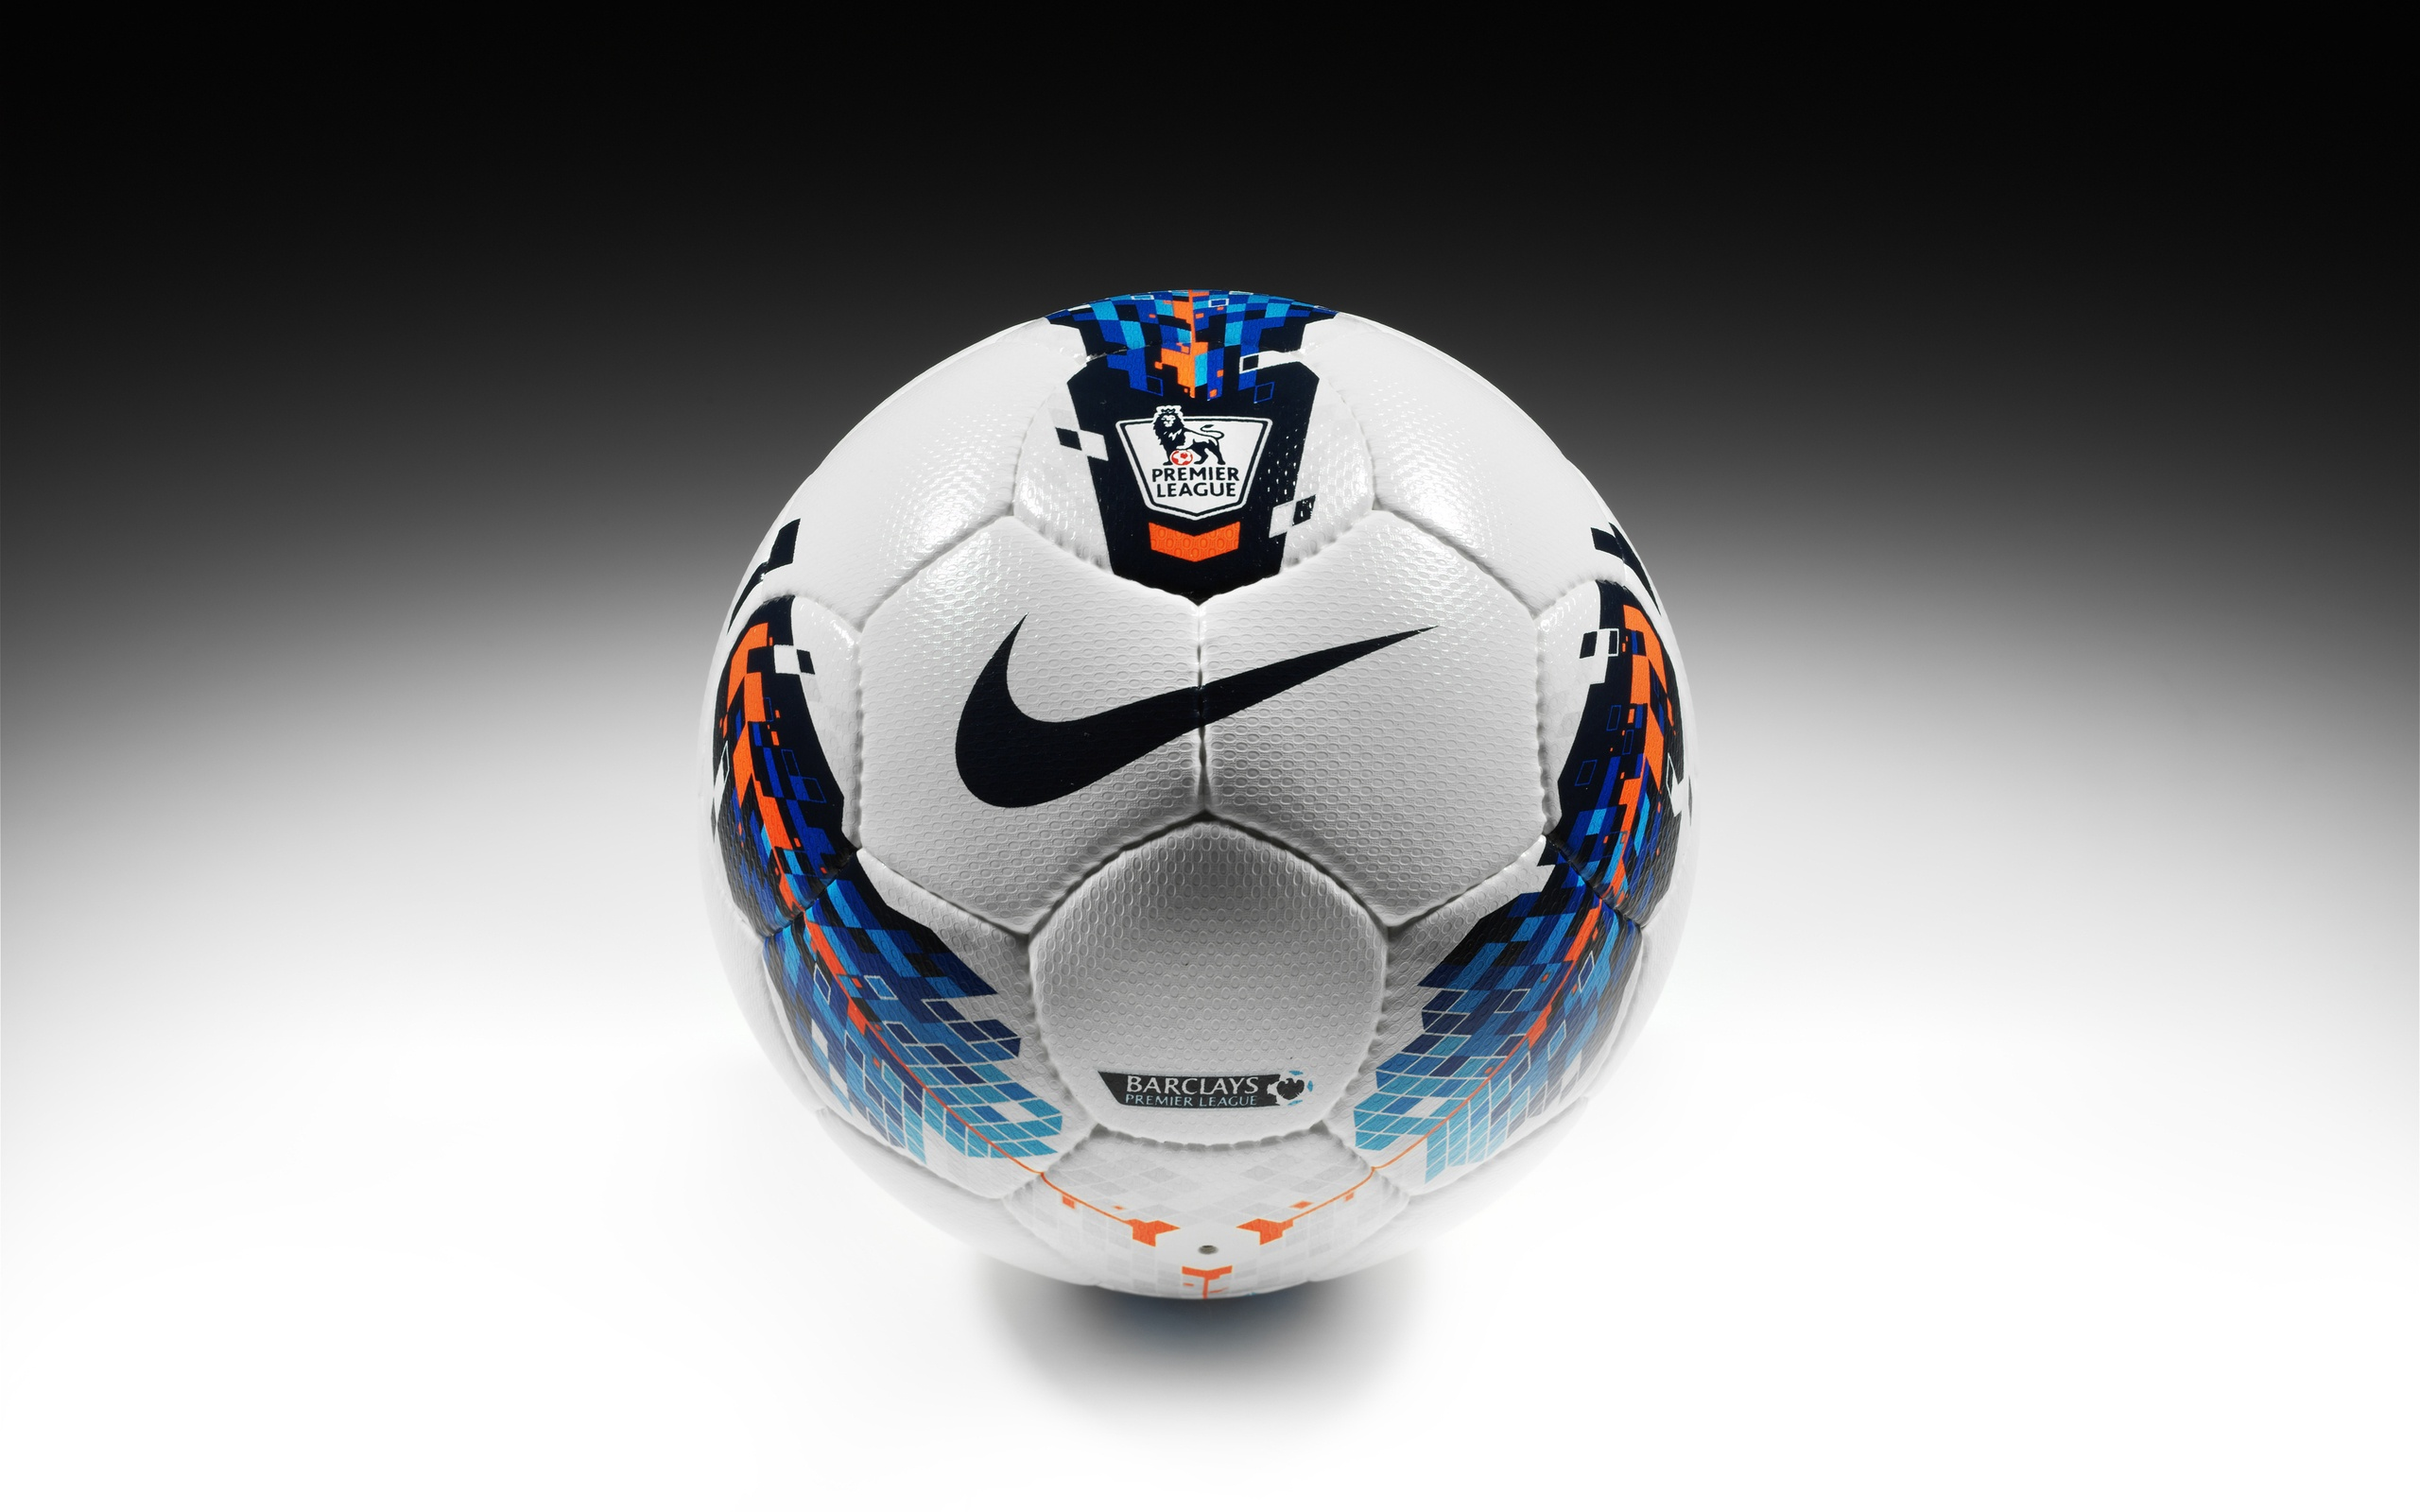 Free Download Download Image Nike Hd Wallpaper Soccer Ball Wallpapers Pc Android 2560x1600 For Your Desktop Mobile Tablet Explore 46 Cool Soccer Ball Wallpaper Cool Soccer Wallpapers Usa Soccer